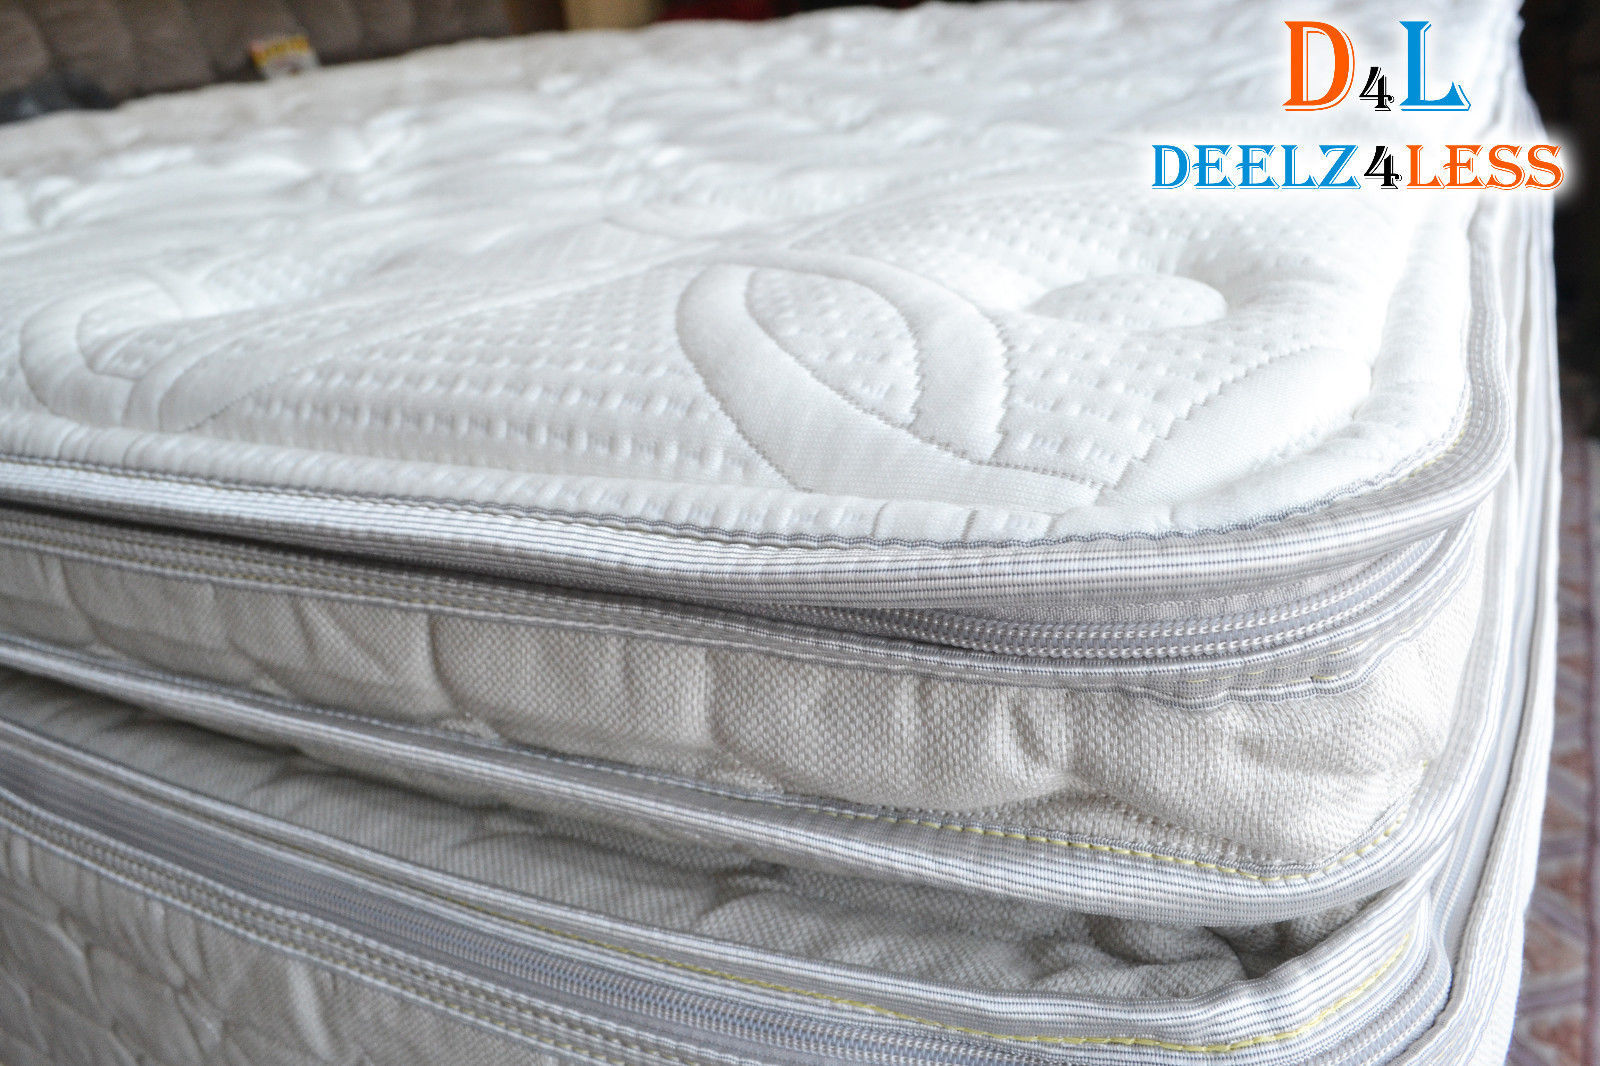 Select fort Sleep Number Queen Size i8 Mattress Model